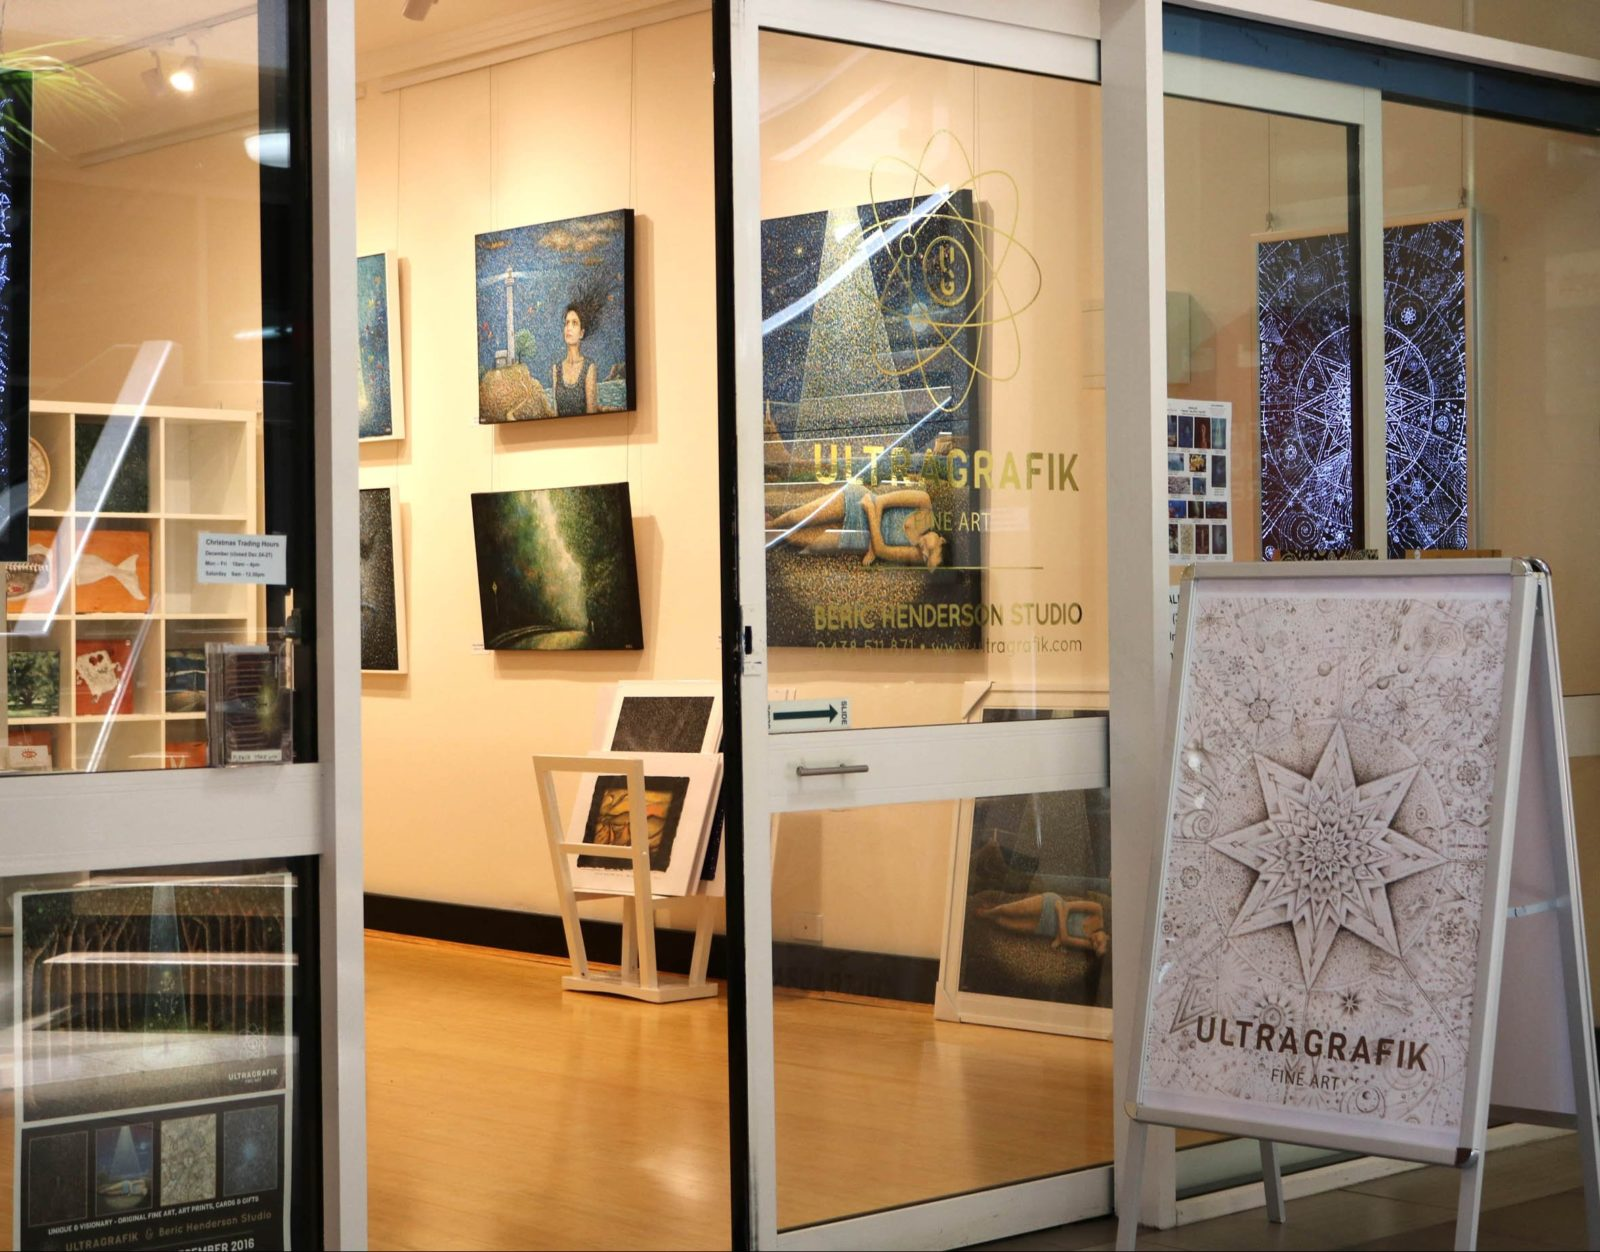 Front window and entrance of Ultragrafik, showing paintings inside.